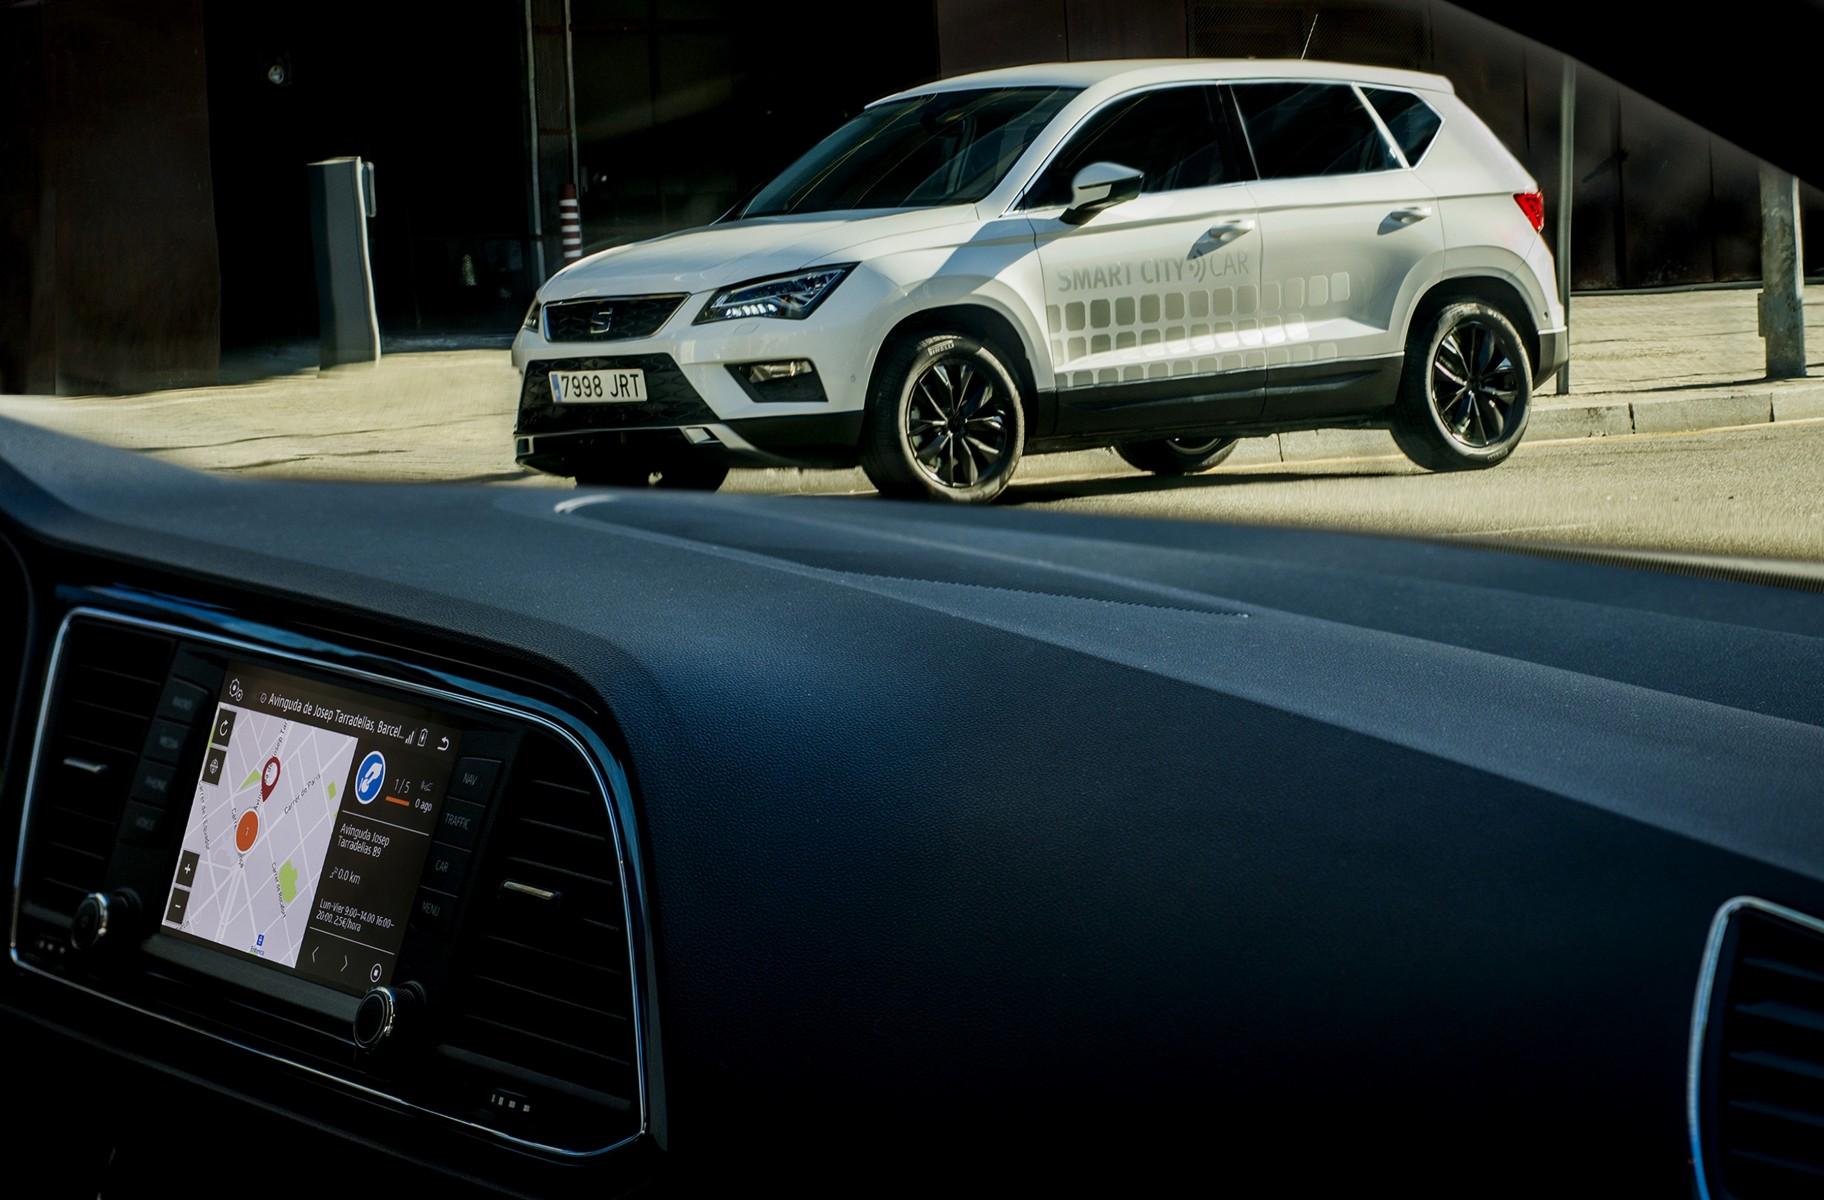 Ateca Smart City Car